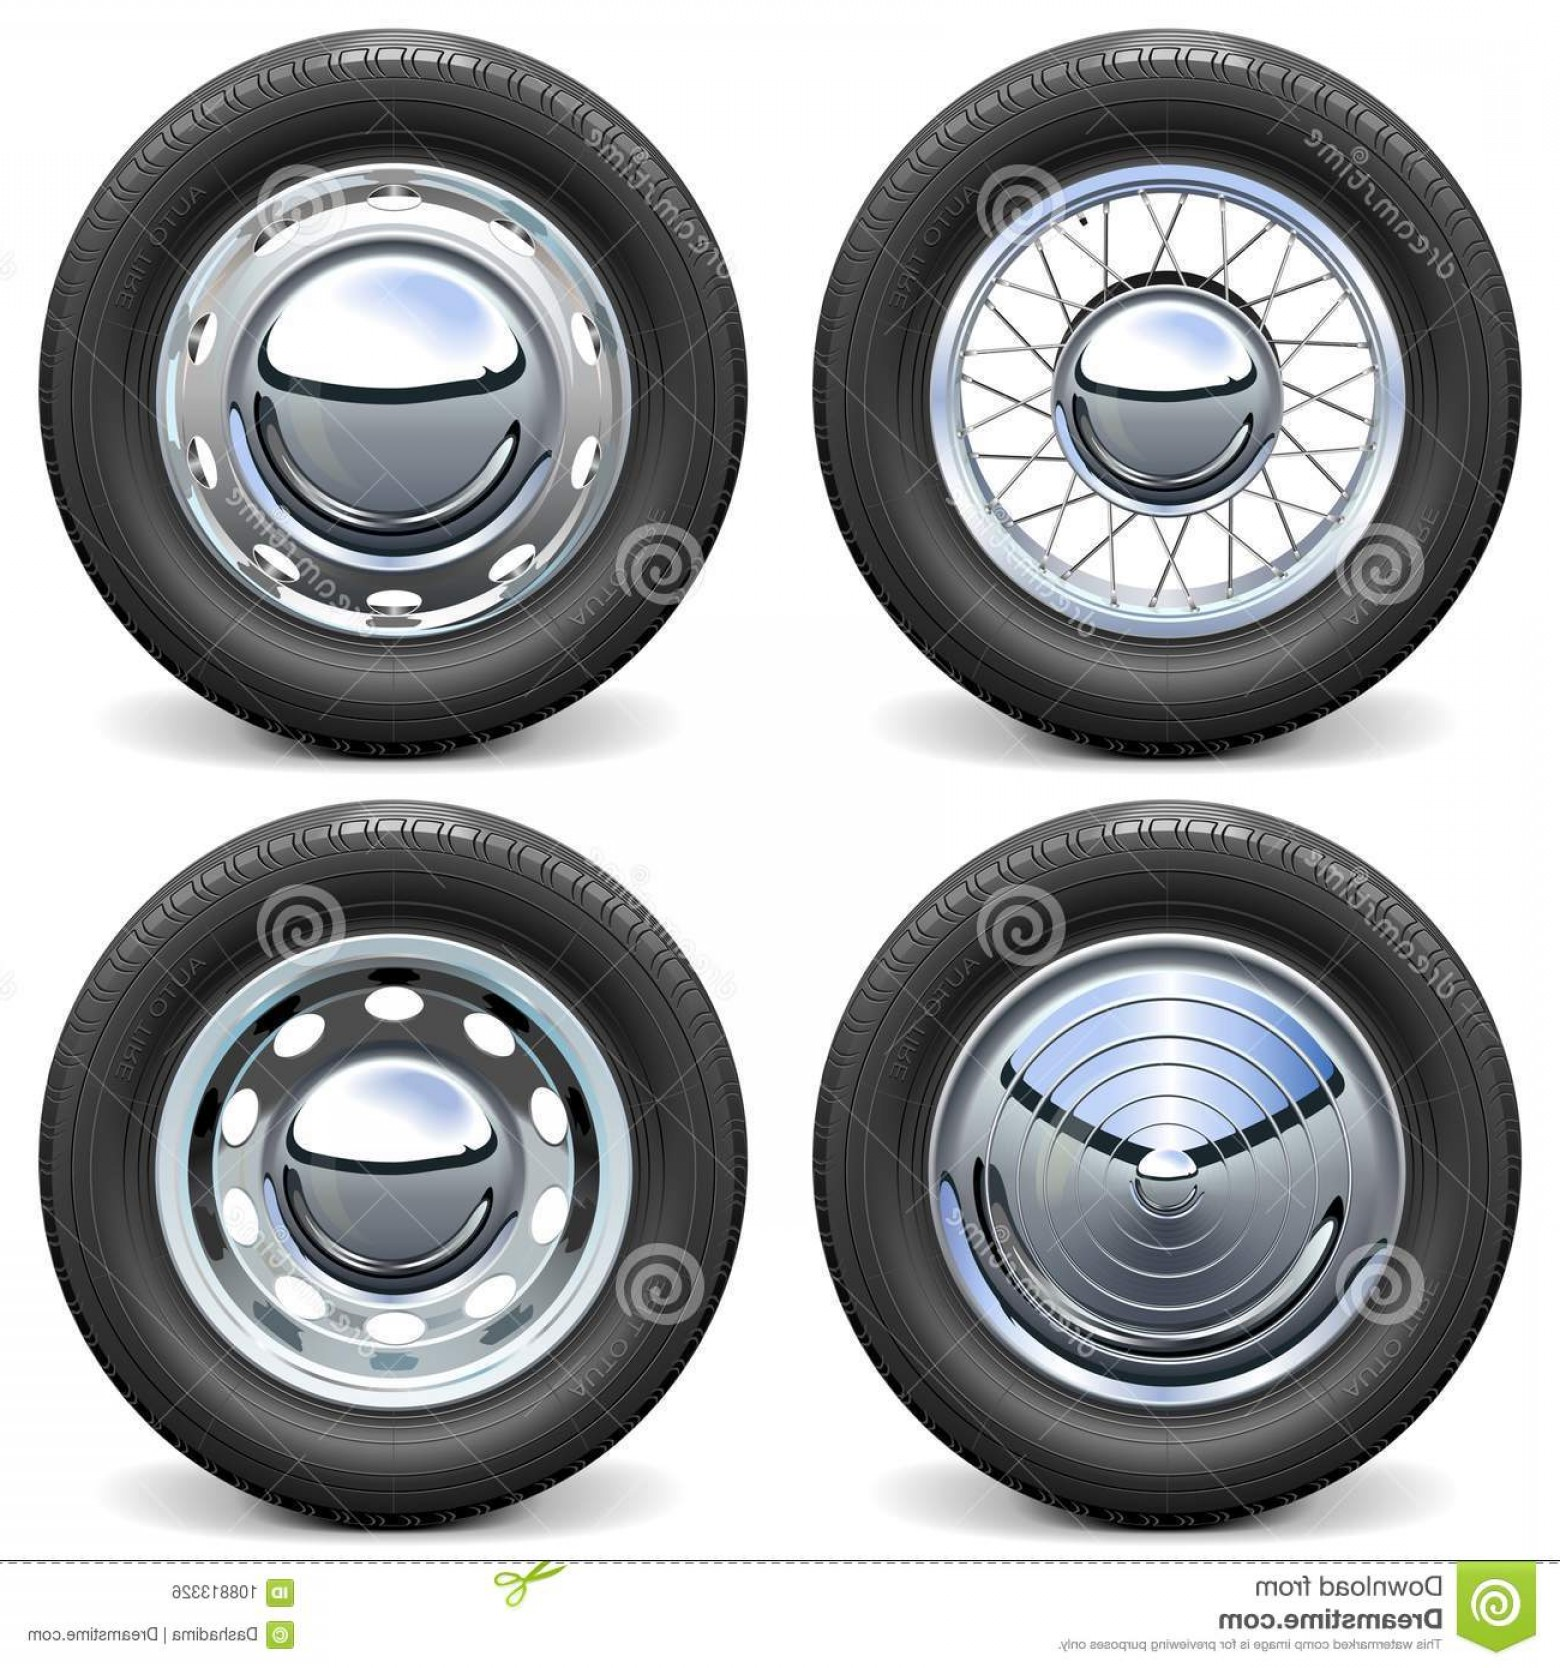 MB Wheels Vector Chrome: Vector Car Tires Chrome Disks Vector Car Tires Chrome Disks Isolated White Background Image